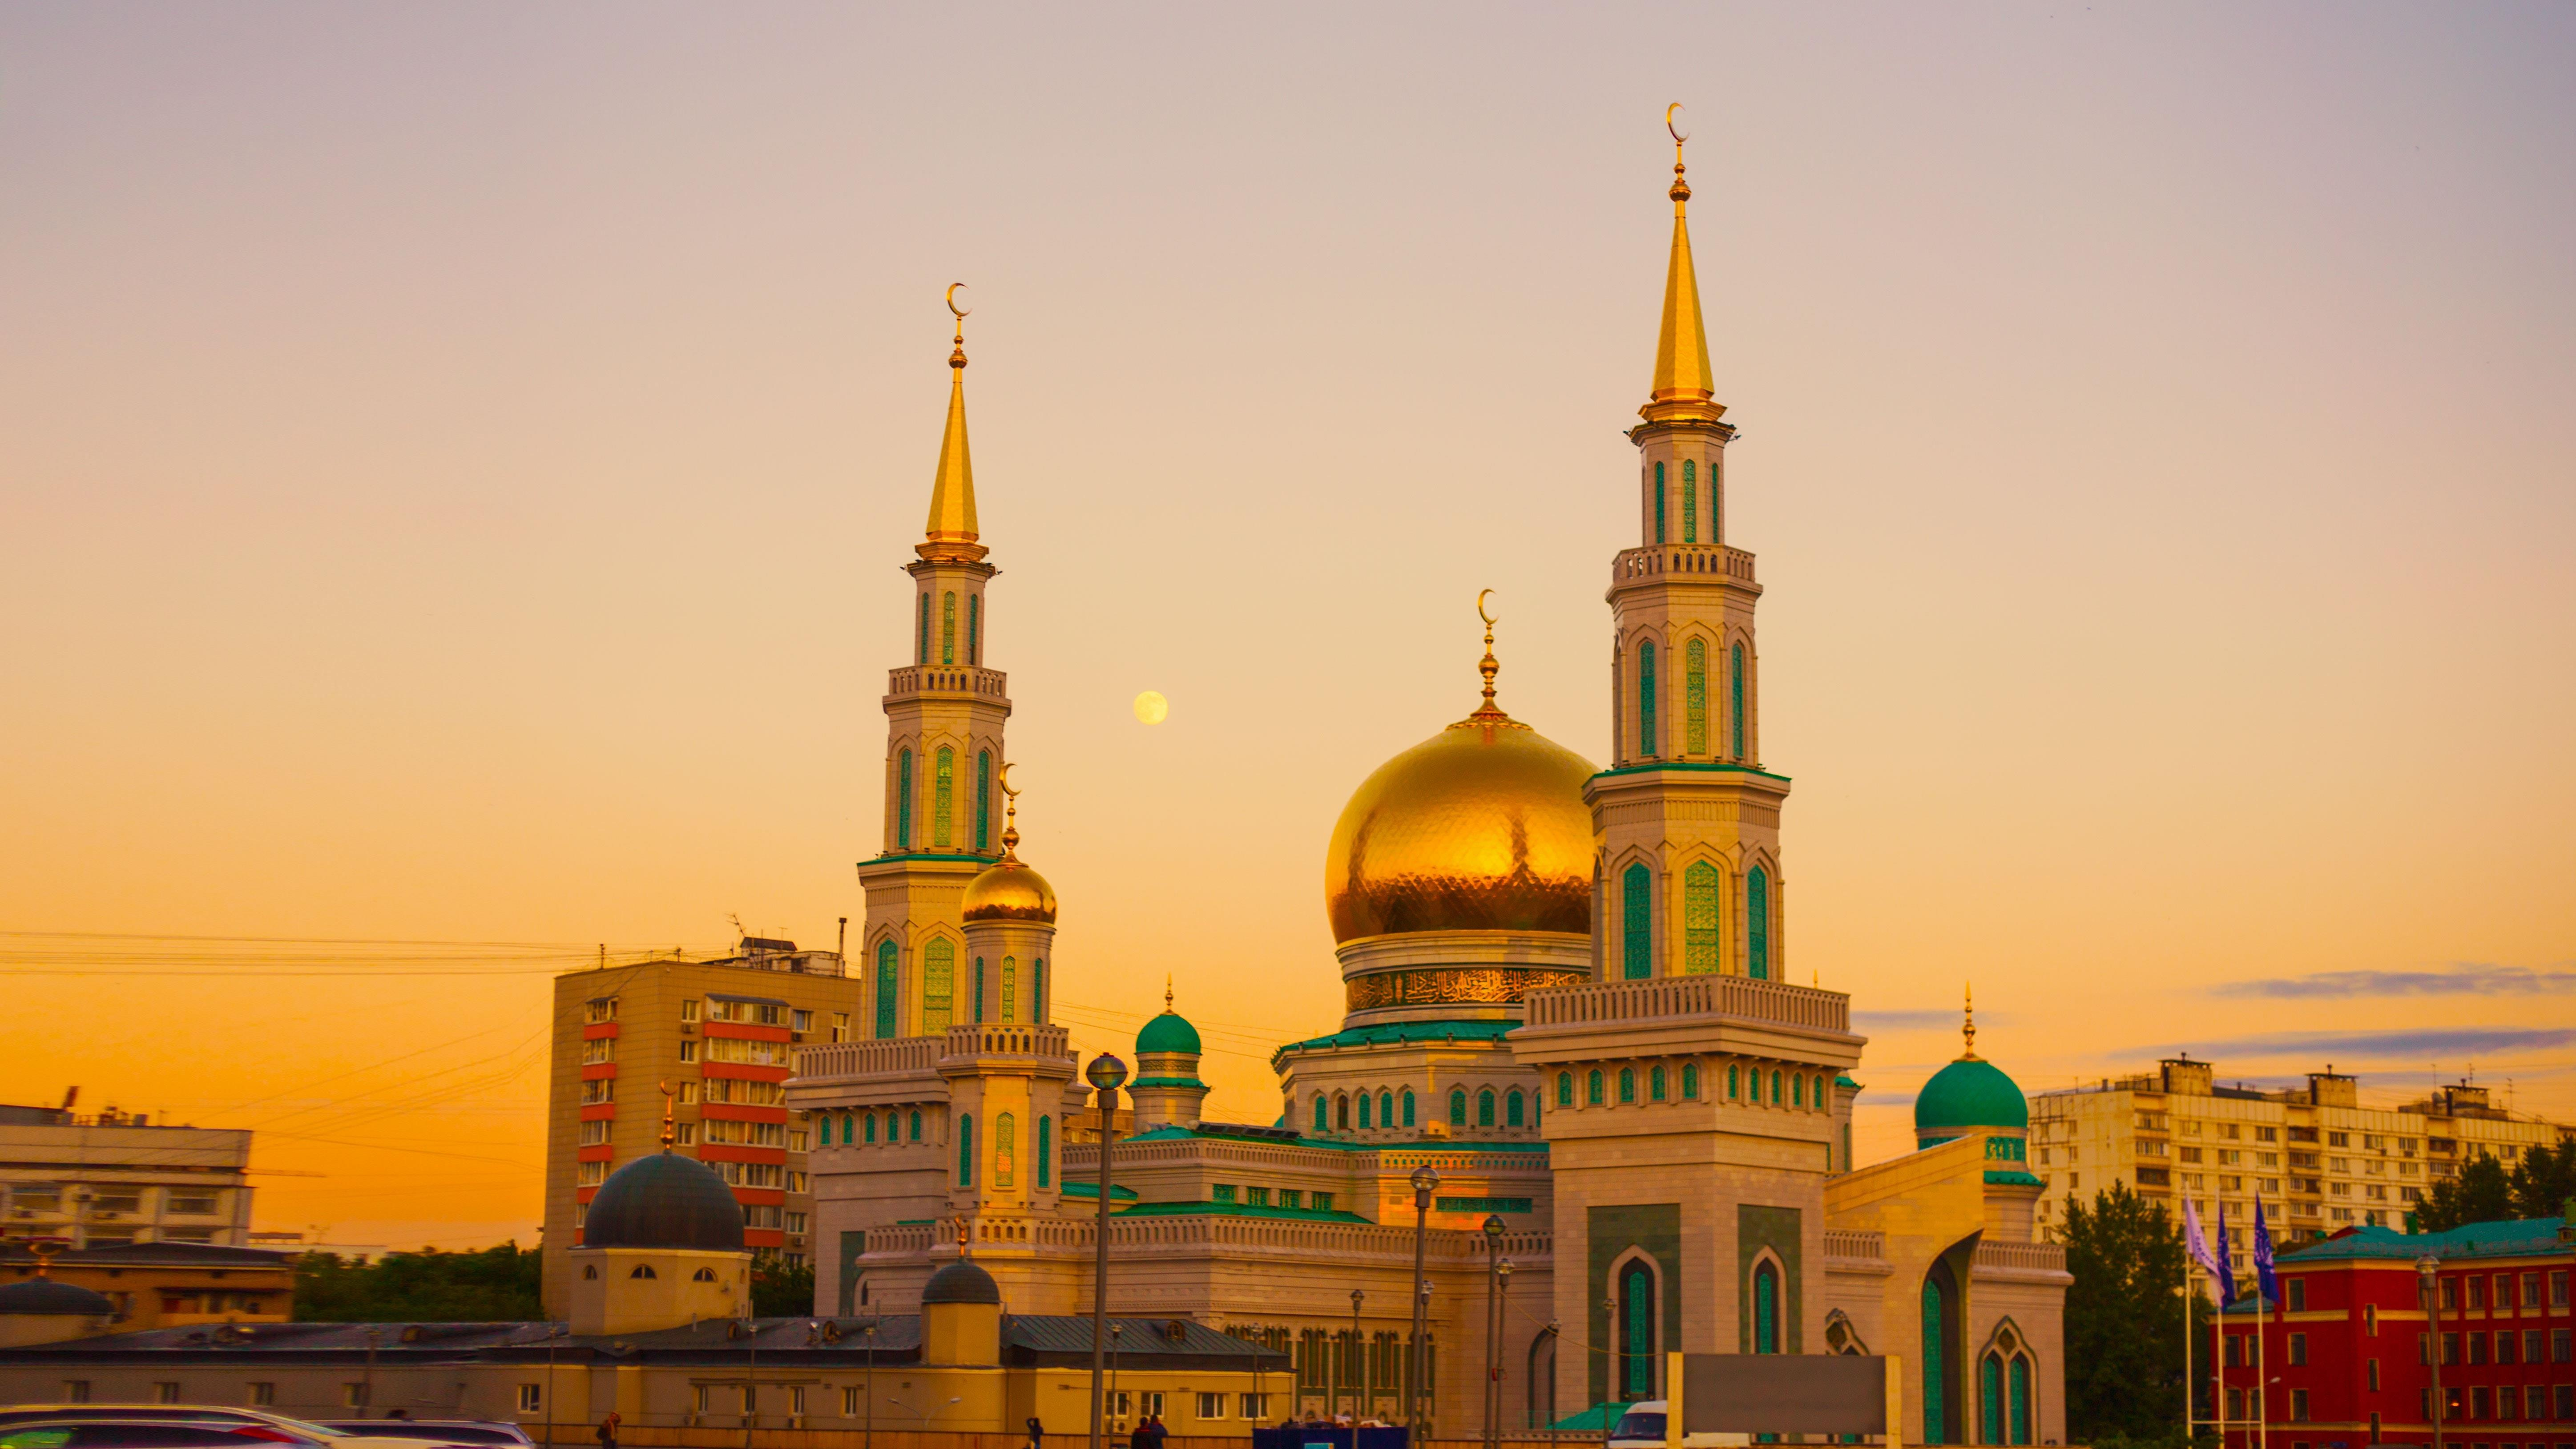 moscow-kremlin-tour-with-tickets-1